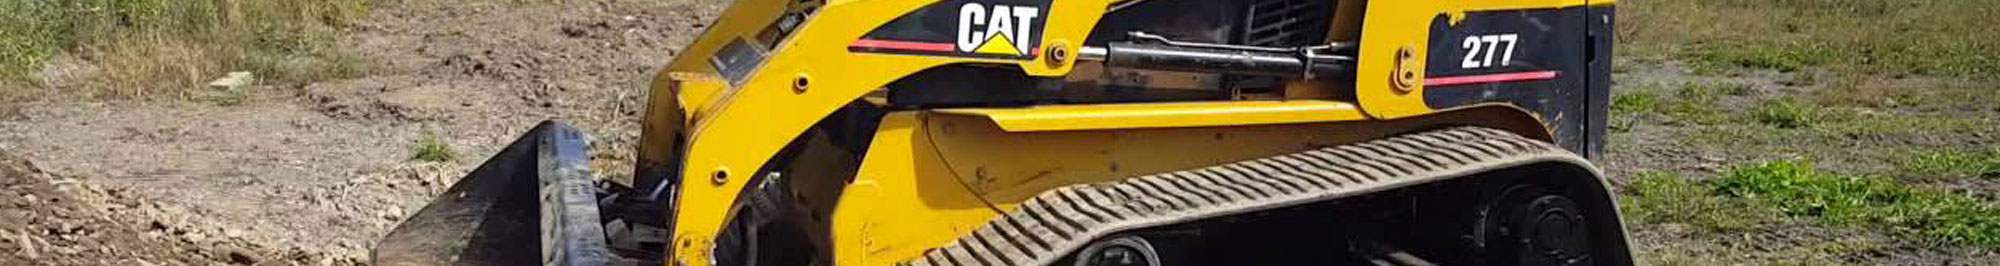 Caterpillar Skid Steer Undercarriage Replacement Parts